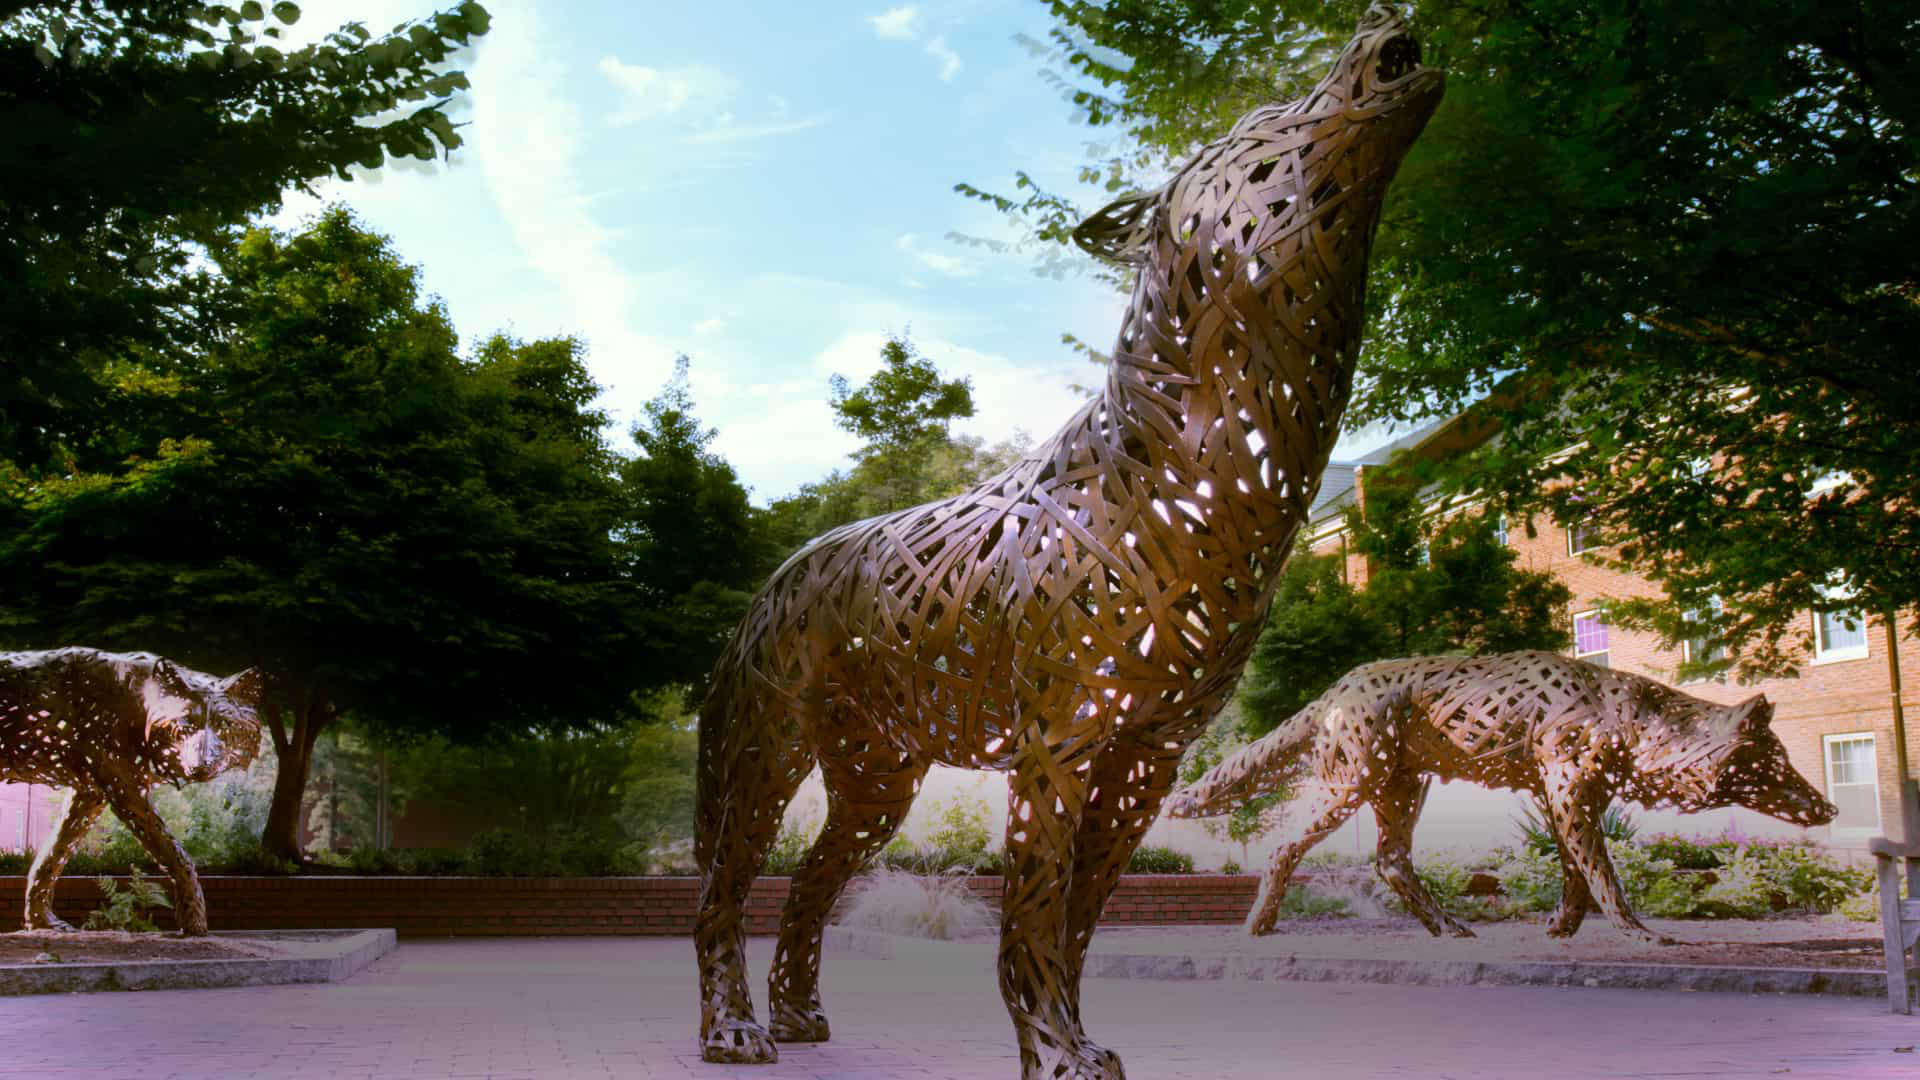 Howling wolf statues